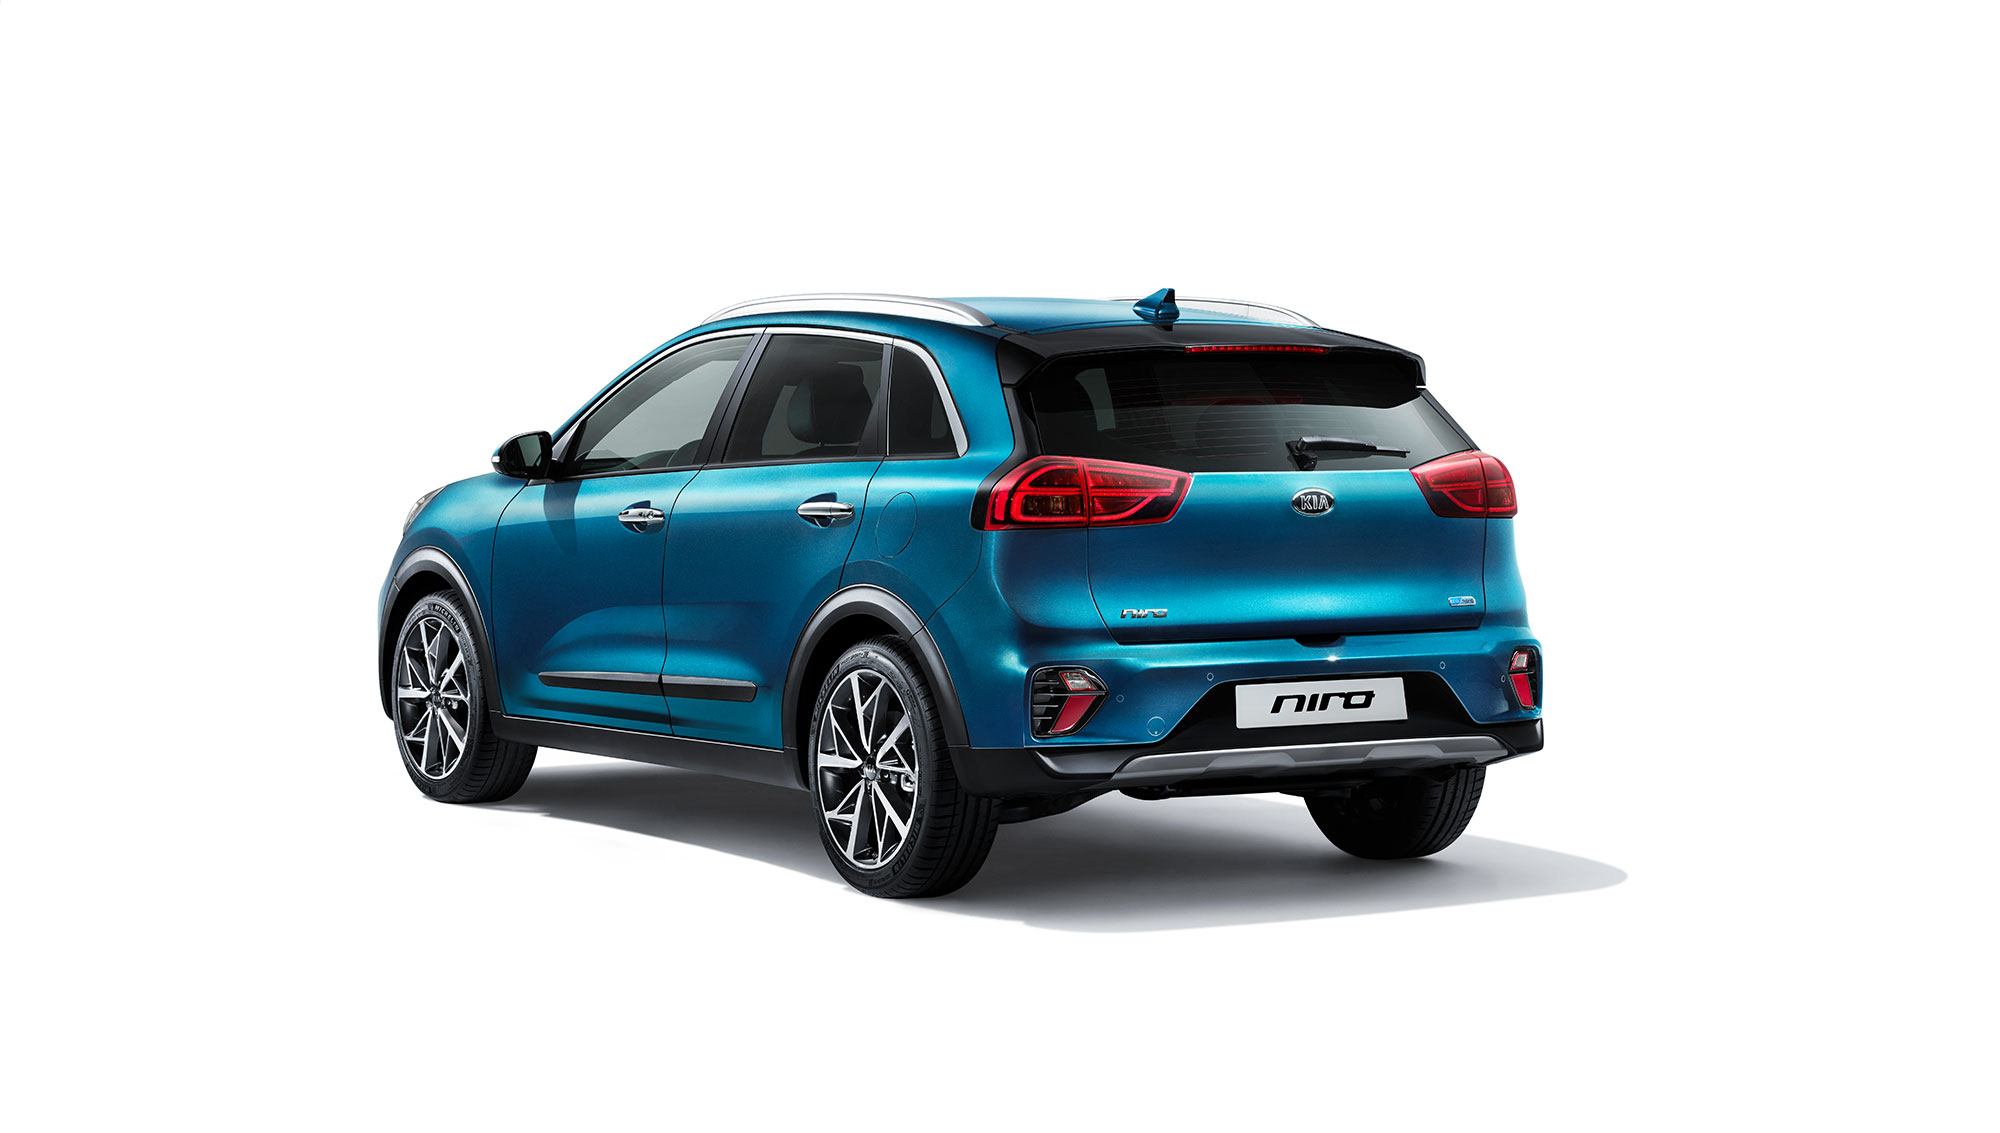 Rear of the Kia Niro Hybrid in Blue